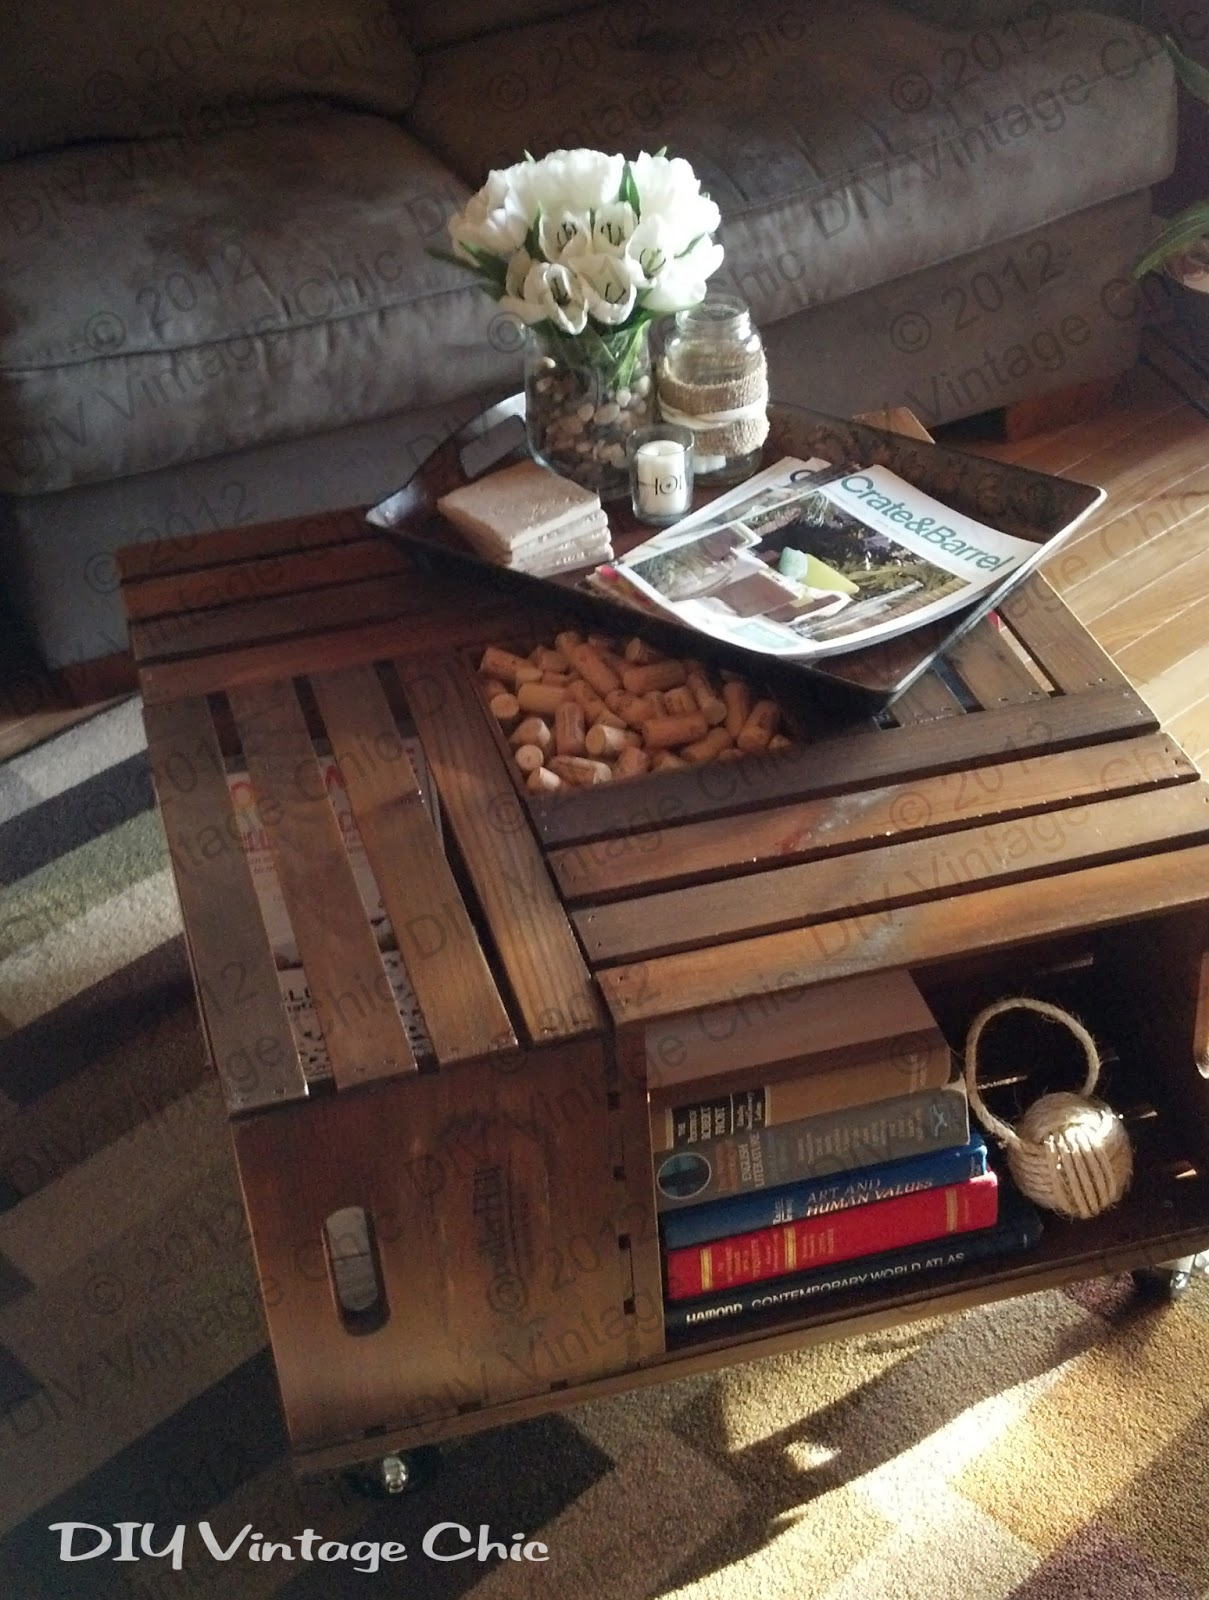 Vintage Wine Crate Coffee Table - DIY Vintage Chic: Vintage Wine Crate Coffee Table